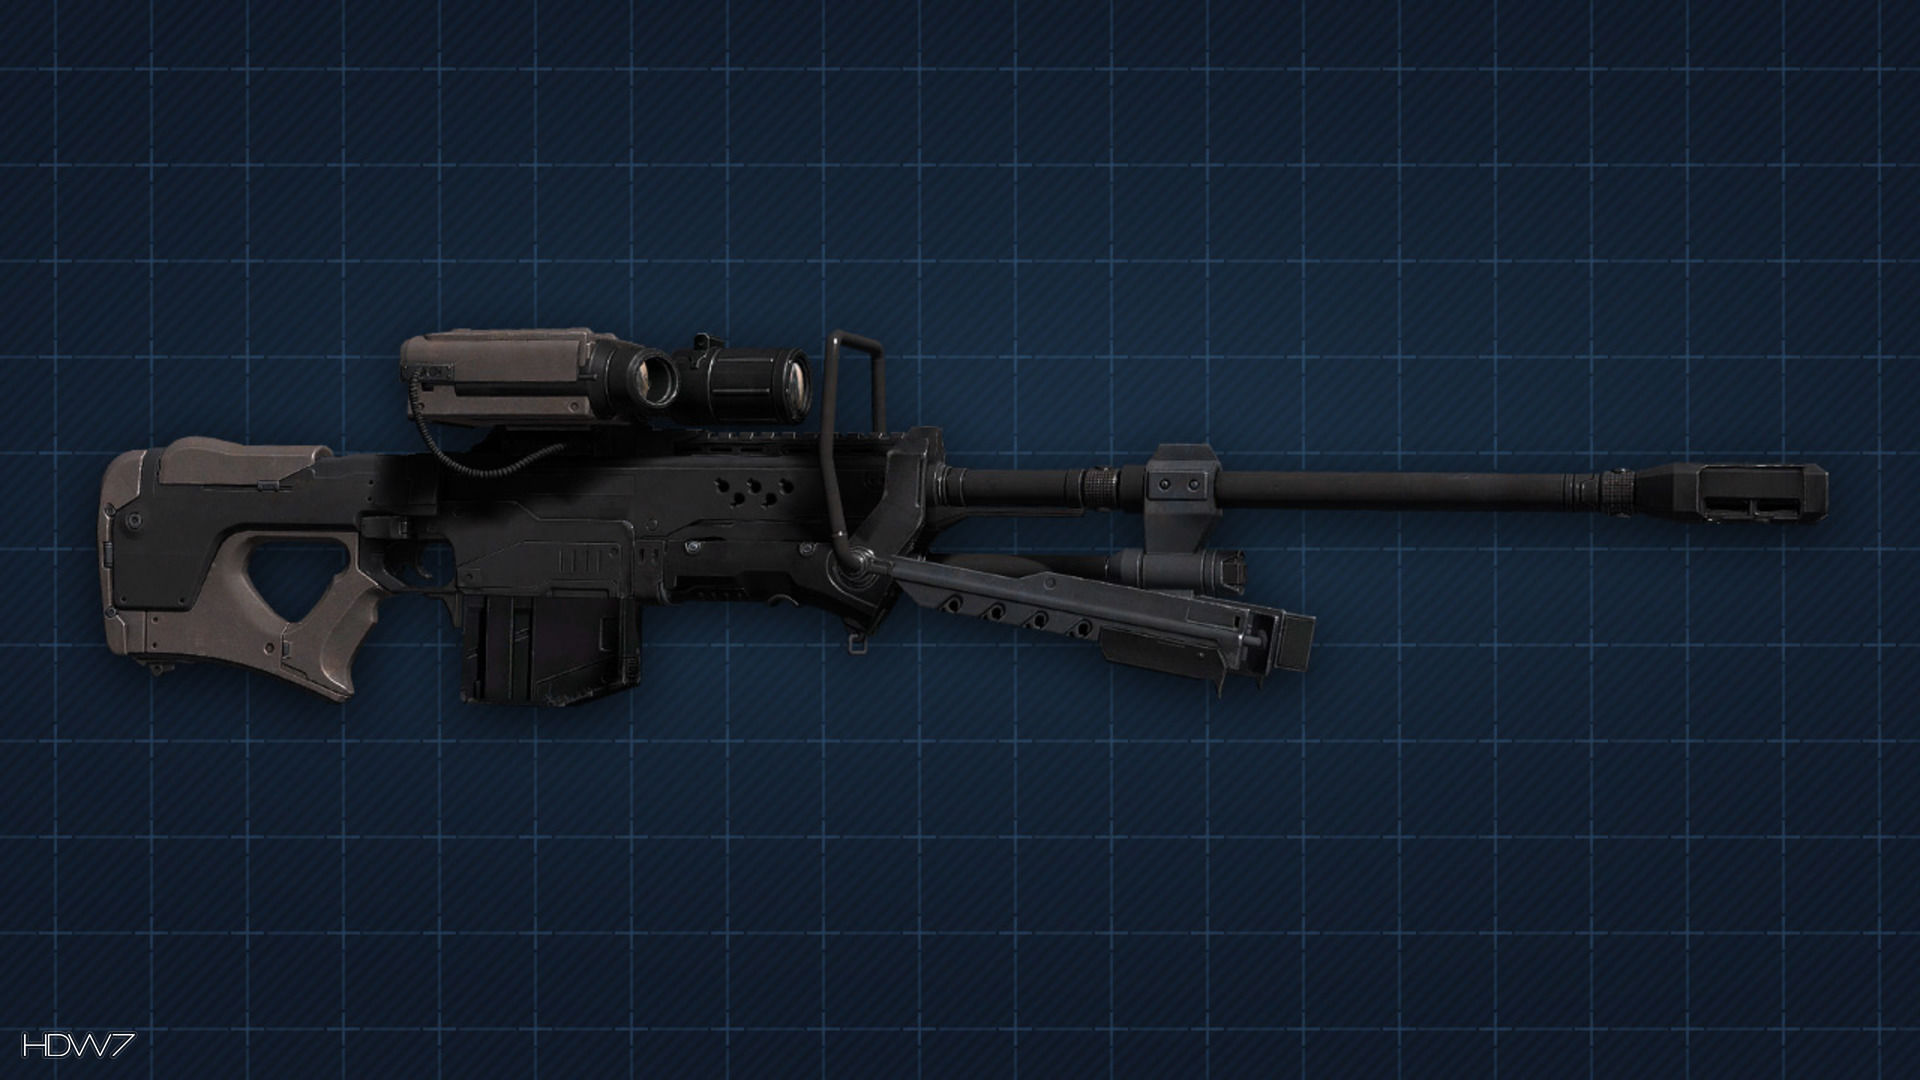 Halo 4 Sniper Rifle Widescreen Hd Wallpaper